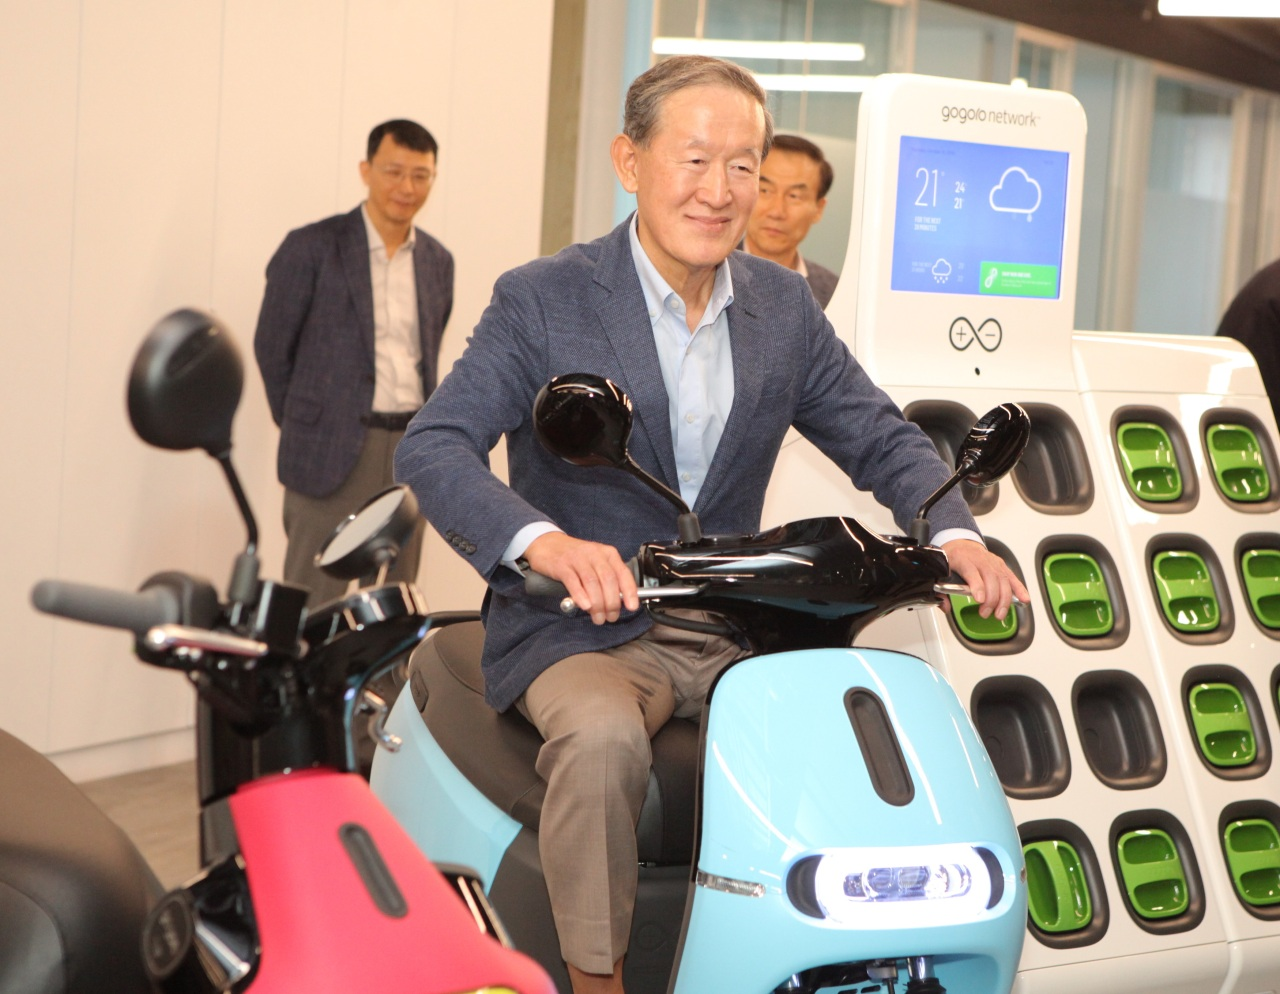 GS Chairman Huh Chang-soo rides on an e-scooter by Taiwanese company Gogoro during his visit to his company in Taipei on Thursday. (GS Group)